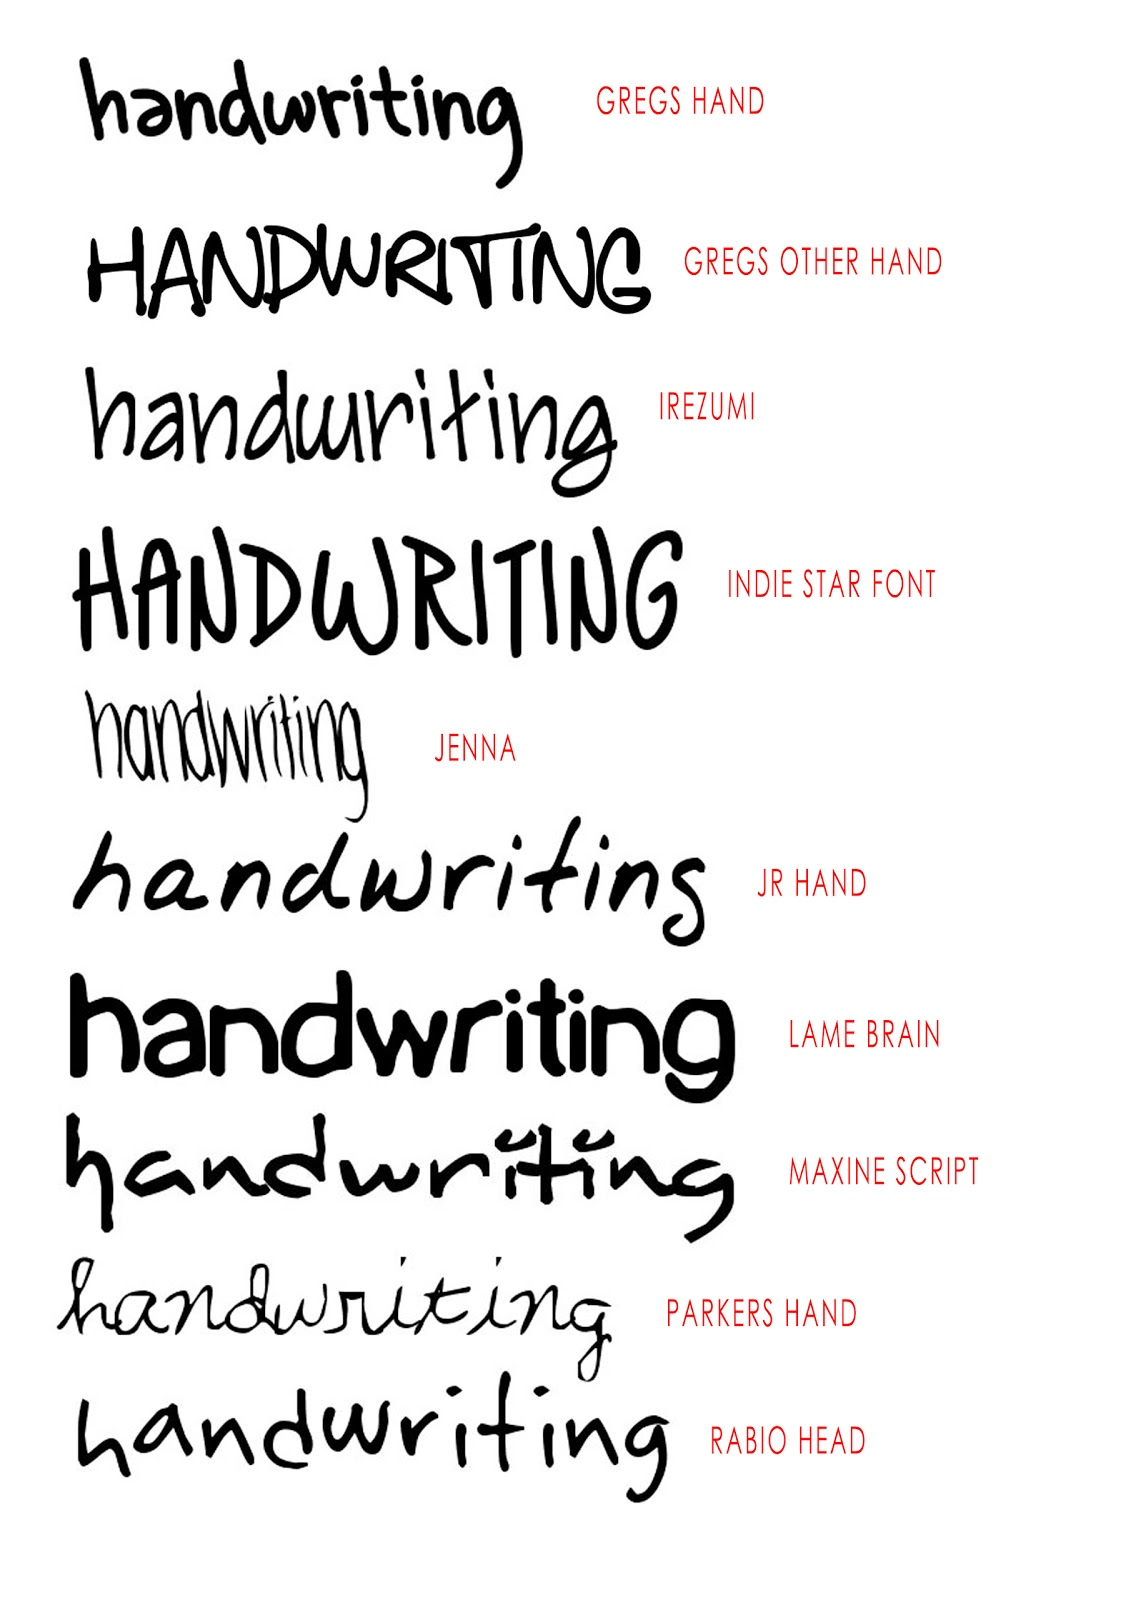 13 Good Handwriting Fonts Images